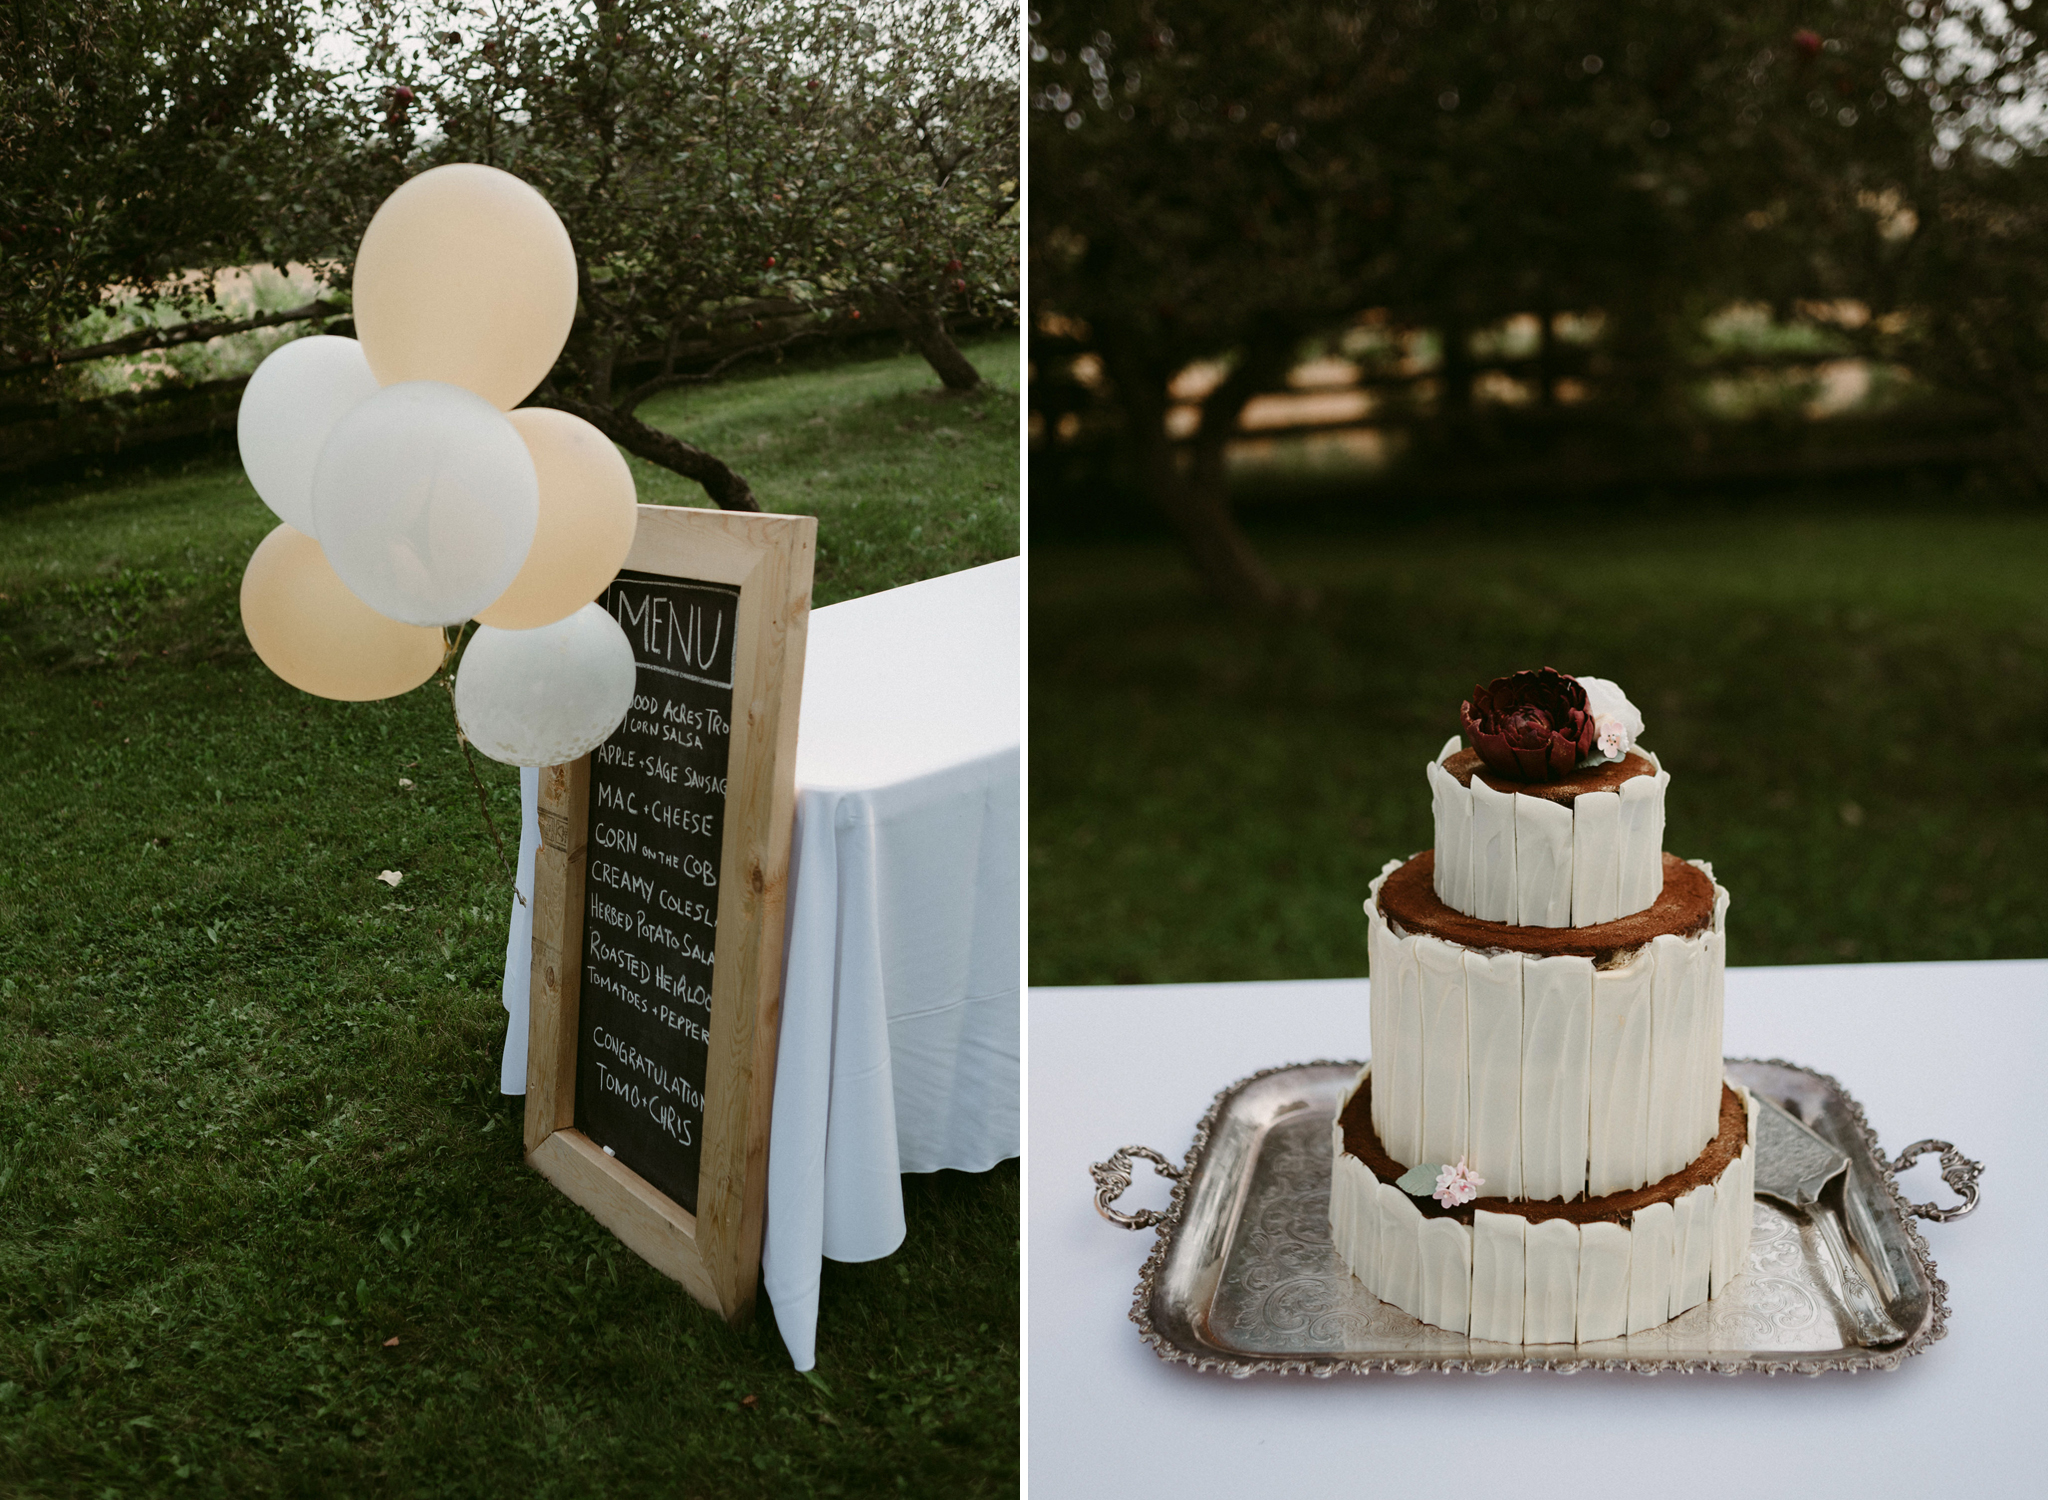 Chalkboard wedding sign and homemade wedding cake topped with flowers